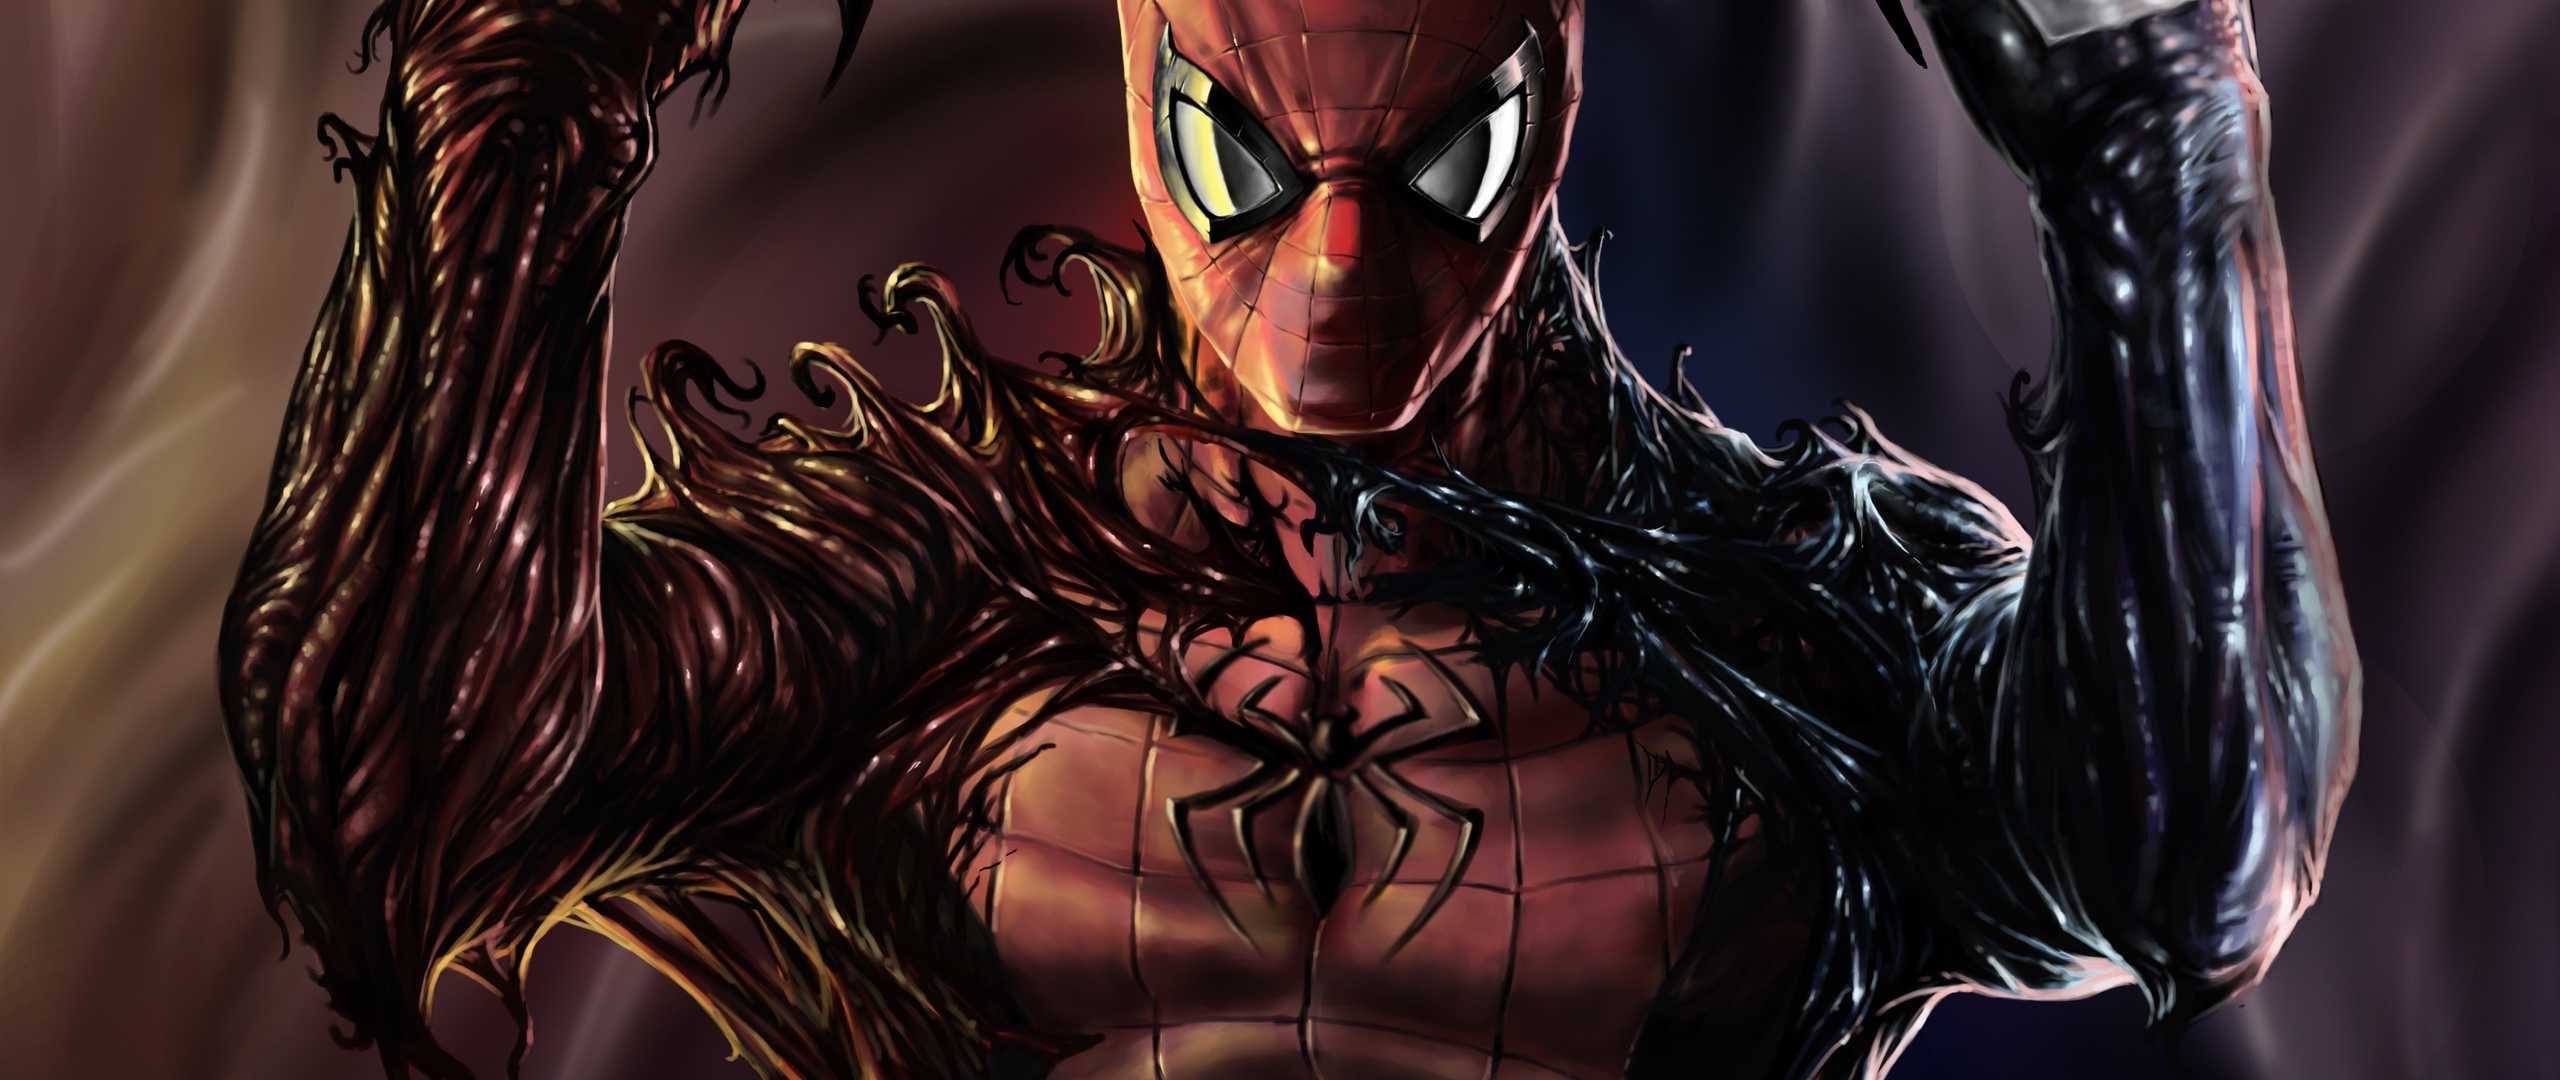 2560x1080 Carnage Venom Spiderman Artwork 2560x1080 ...